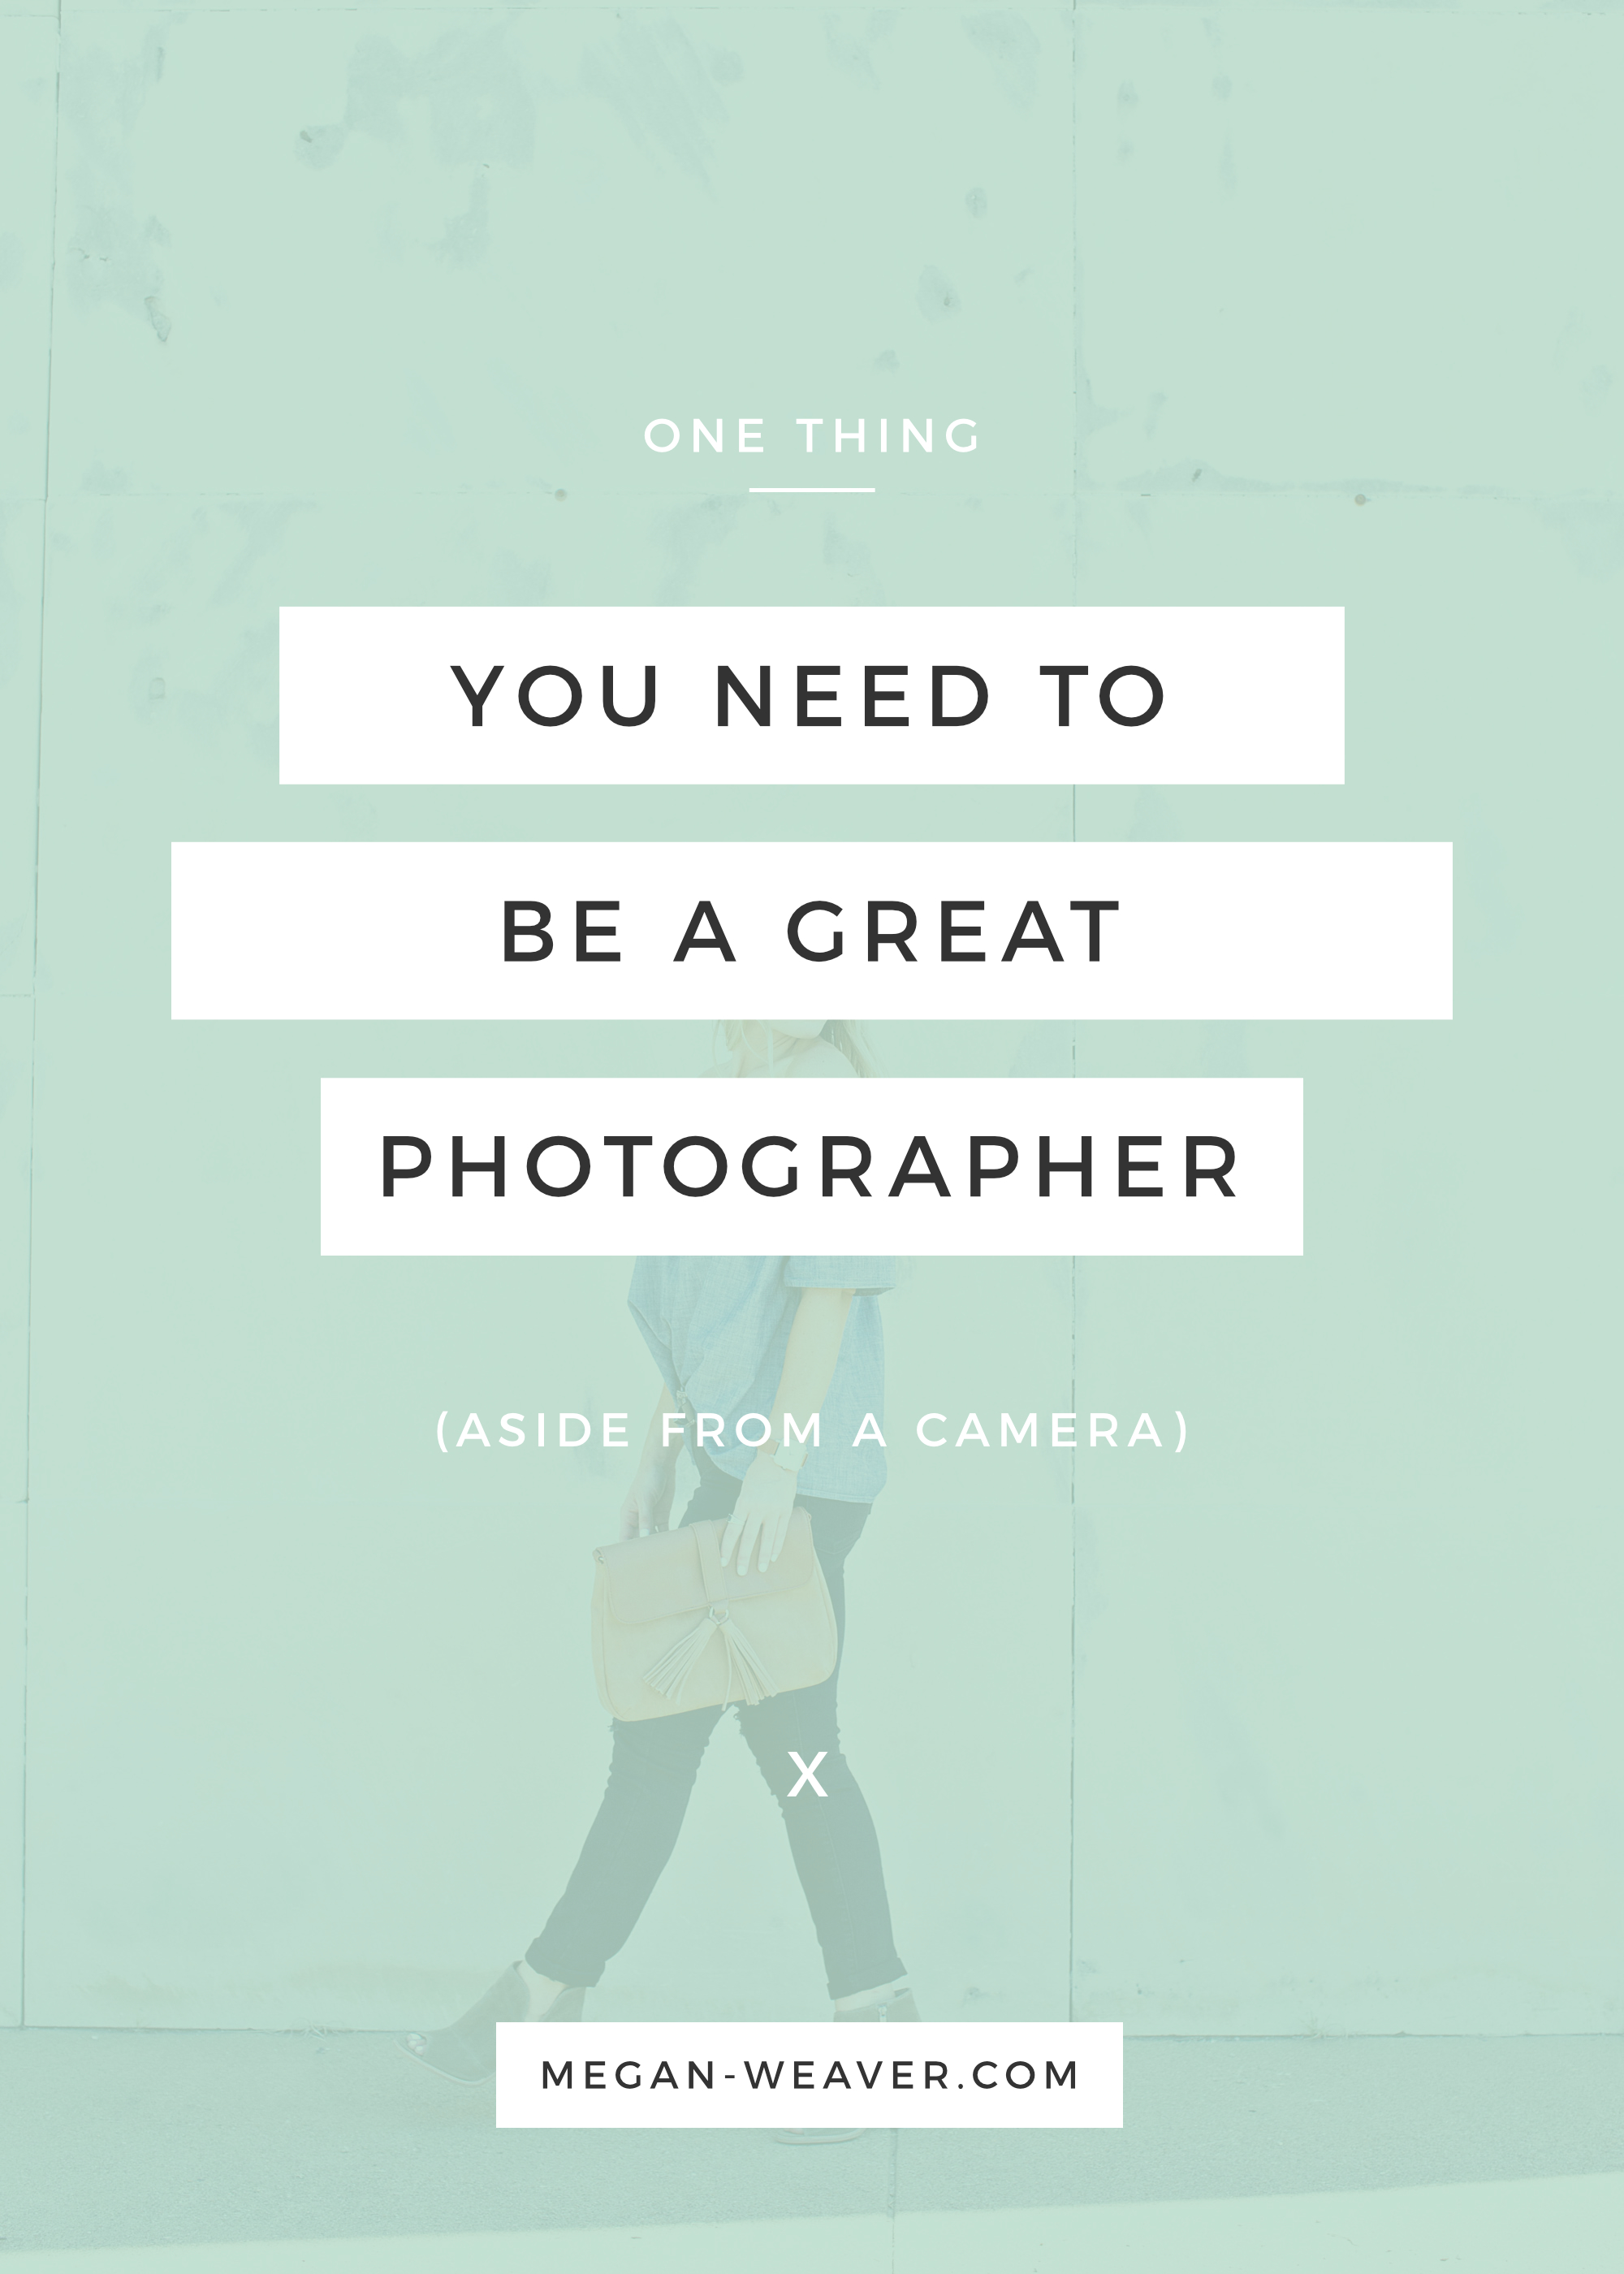 If you're hoping to become a great photographer, there's really only one thing that you need—other than a camera. Click here to find out what that one very important thing is!